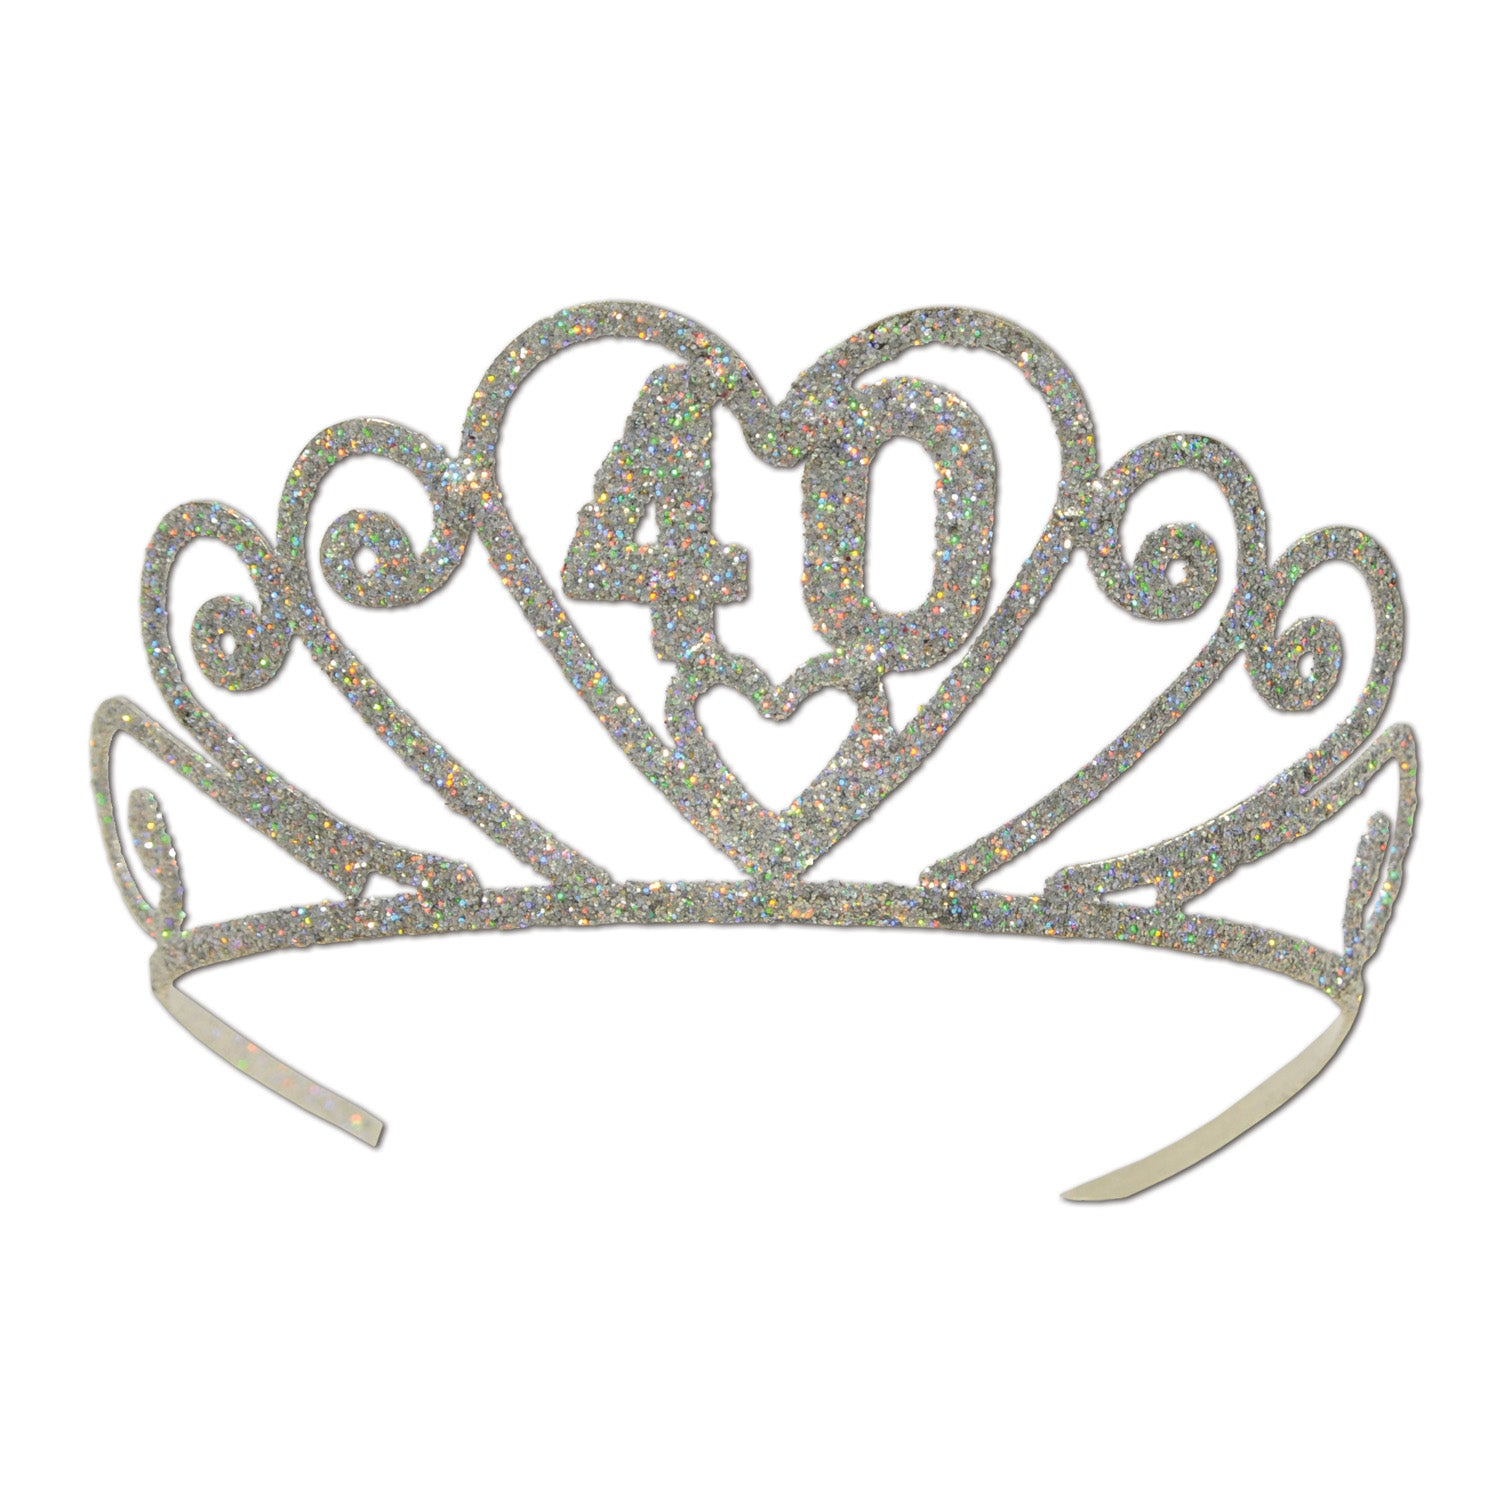 Glittered Metal 40 Tiara by Beistle - 40th Birthday Party Decorations